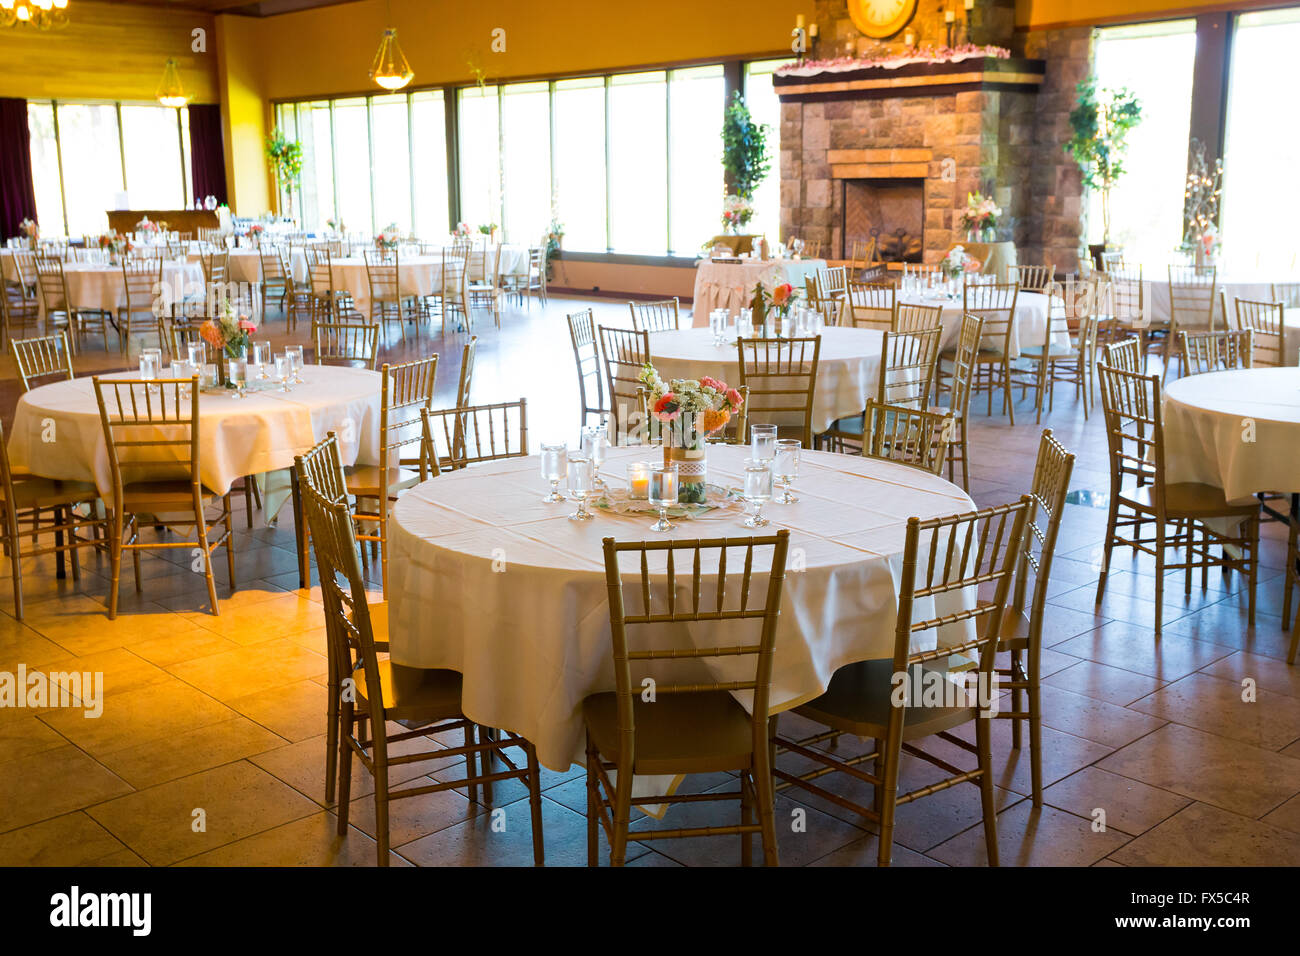 Tables and seating for an indoor wedding reception in a craftsman tables and seating for an indoor wedding reception in a craftsman style event hall junglespirit Choice Image